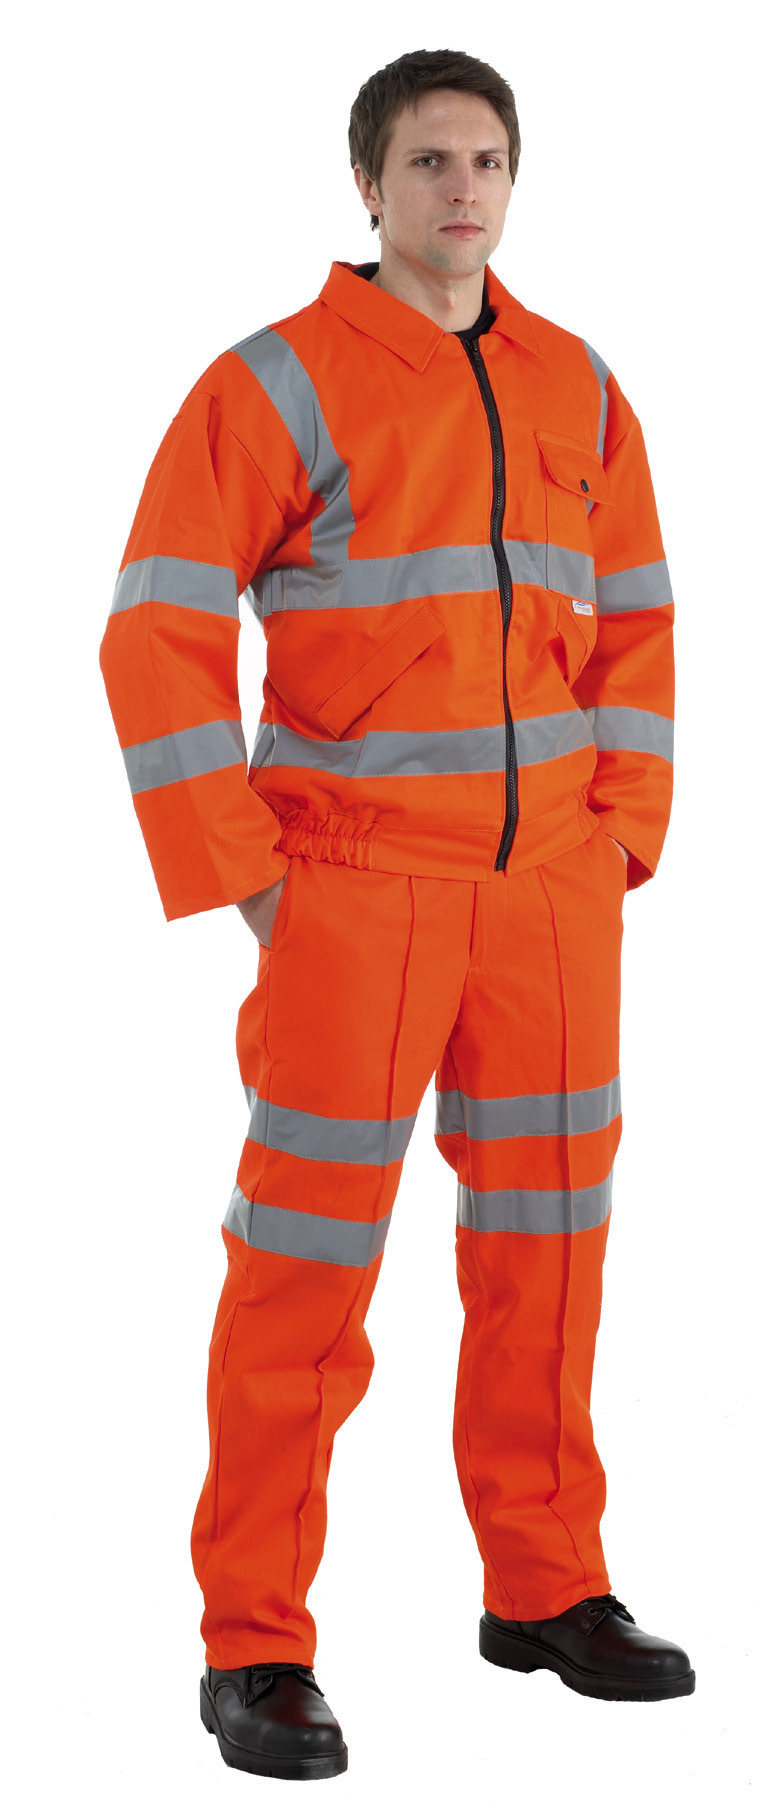 bodyguard-Heat-and-Flame-Resistant-Hi-Vis-Flame-Retardent-Work-Trousers